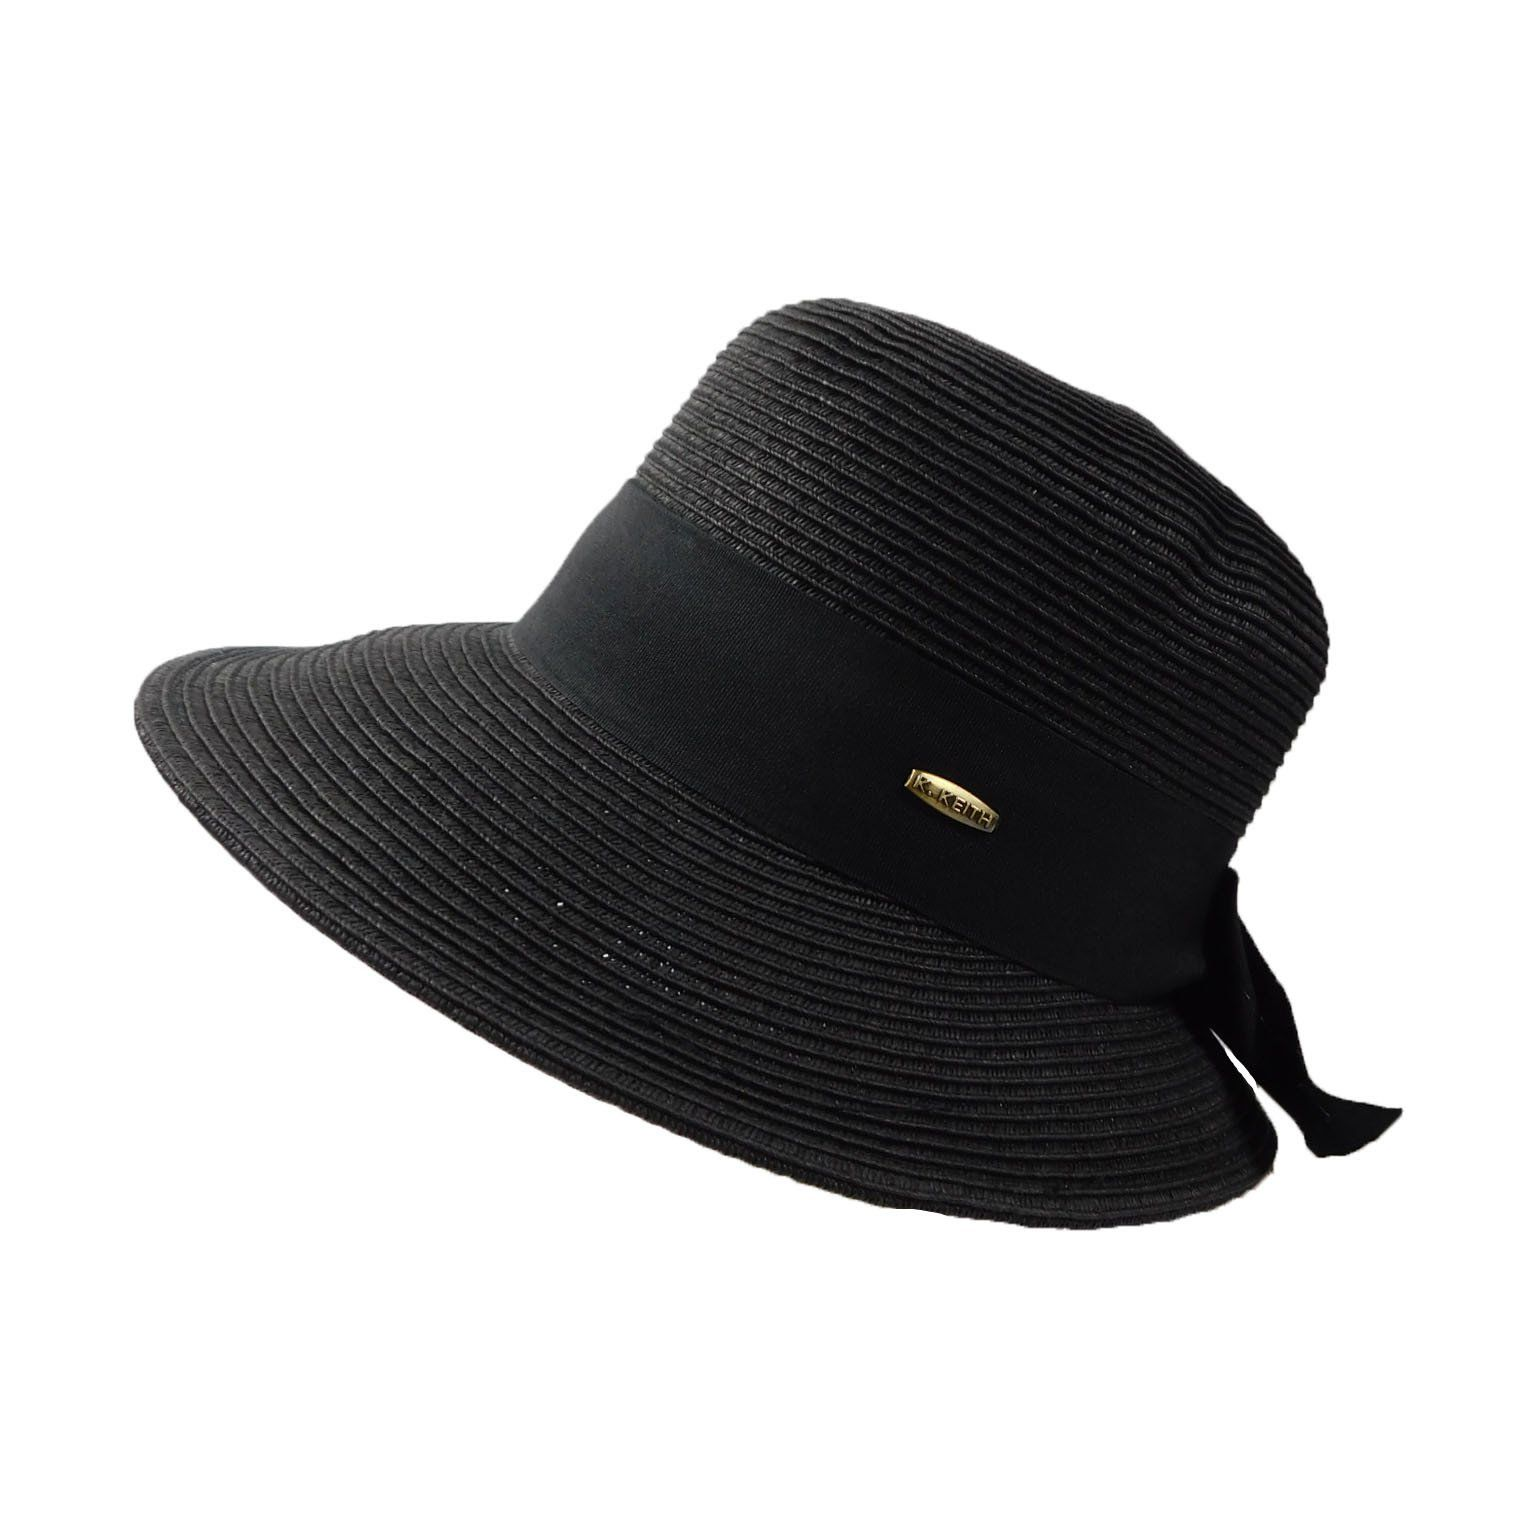 441bd8f99 Sun Hat with Narrowing Brim - Karen Keith   Products   Sun hats ...